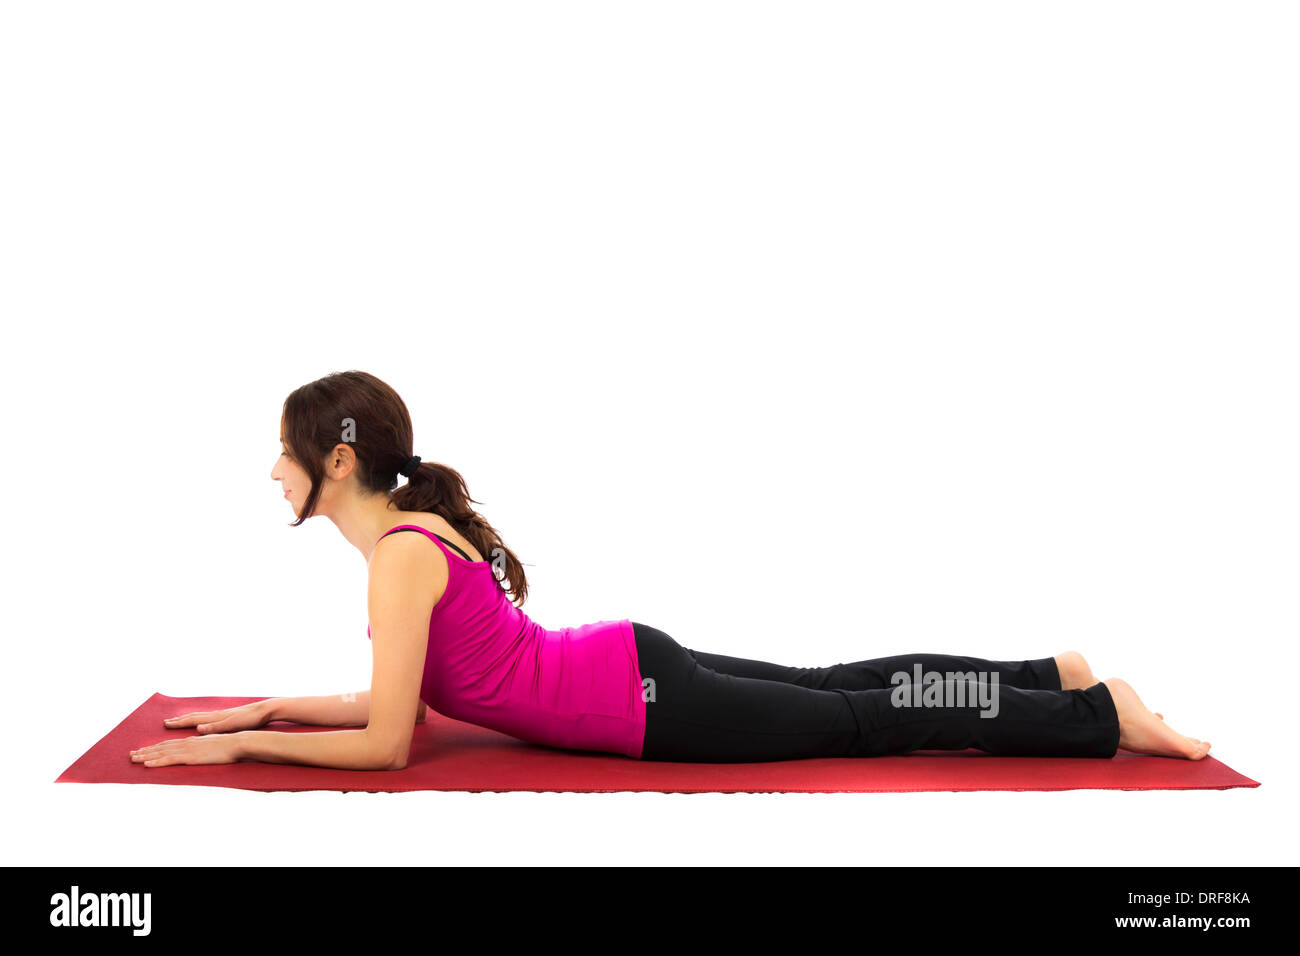 Young woman doing Sphinx Pose in Yoga (Series with the same model